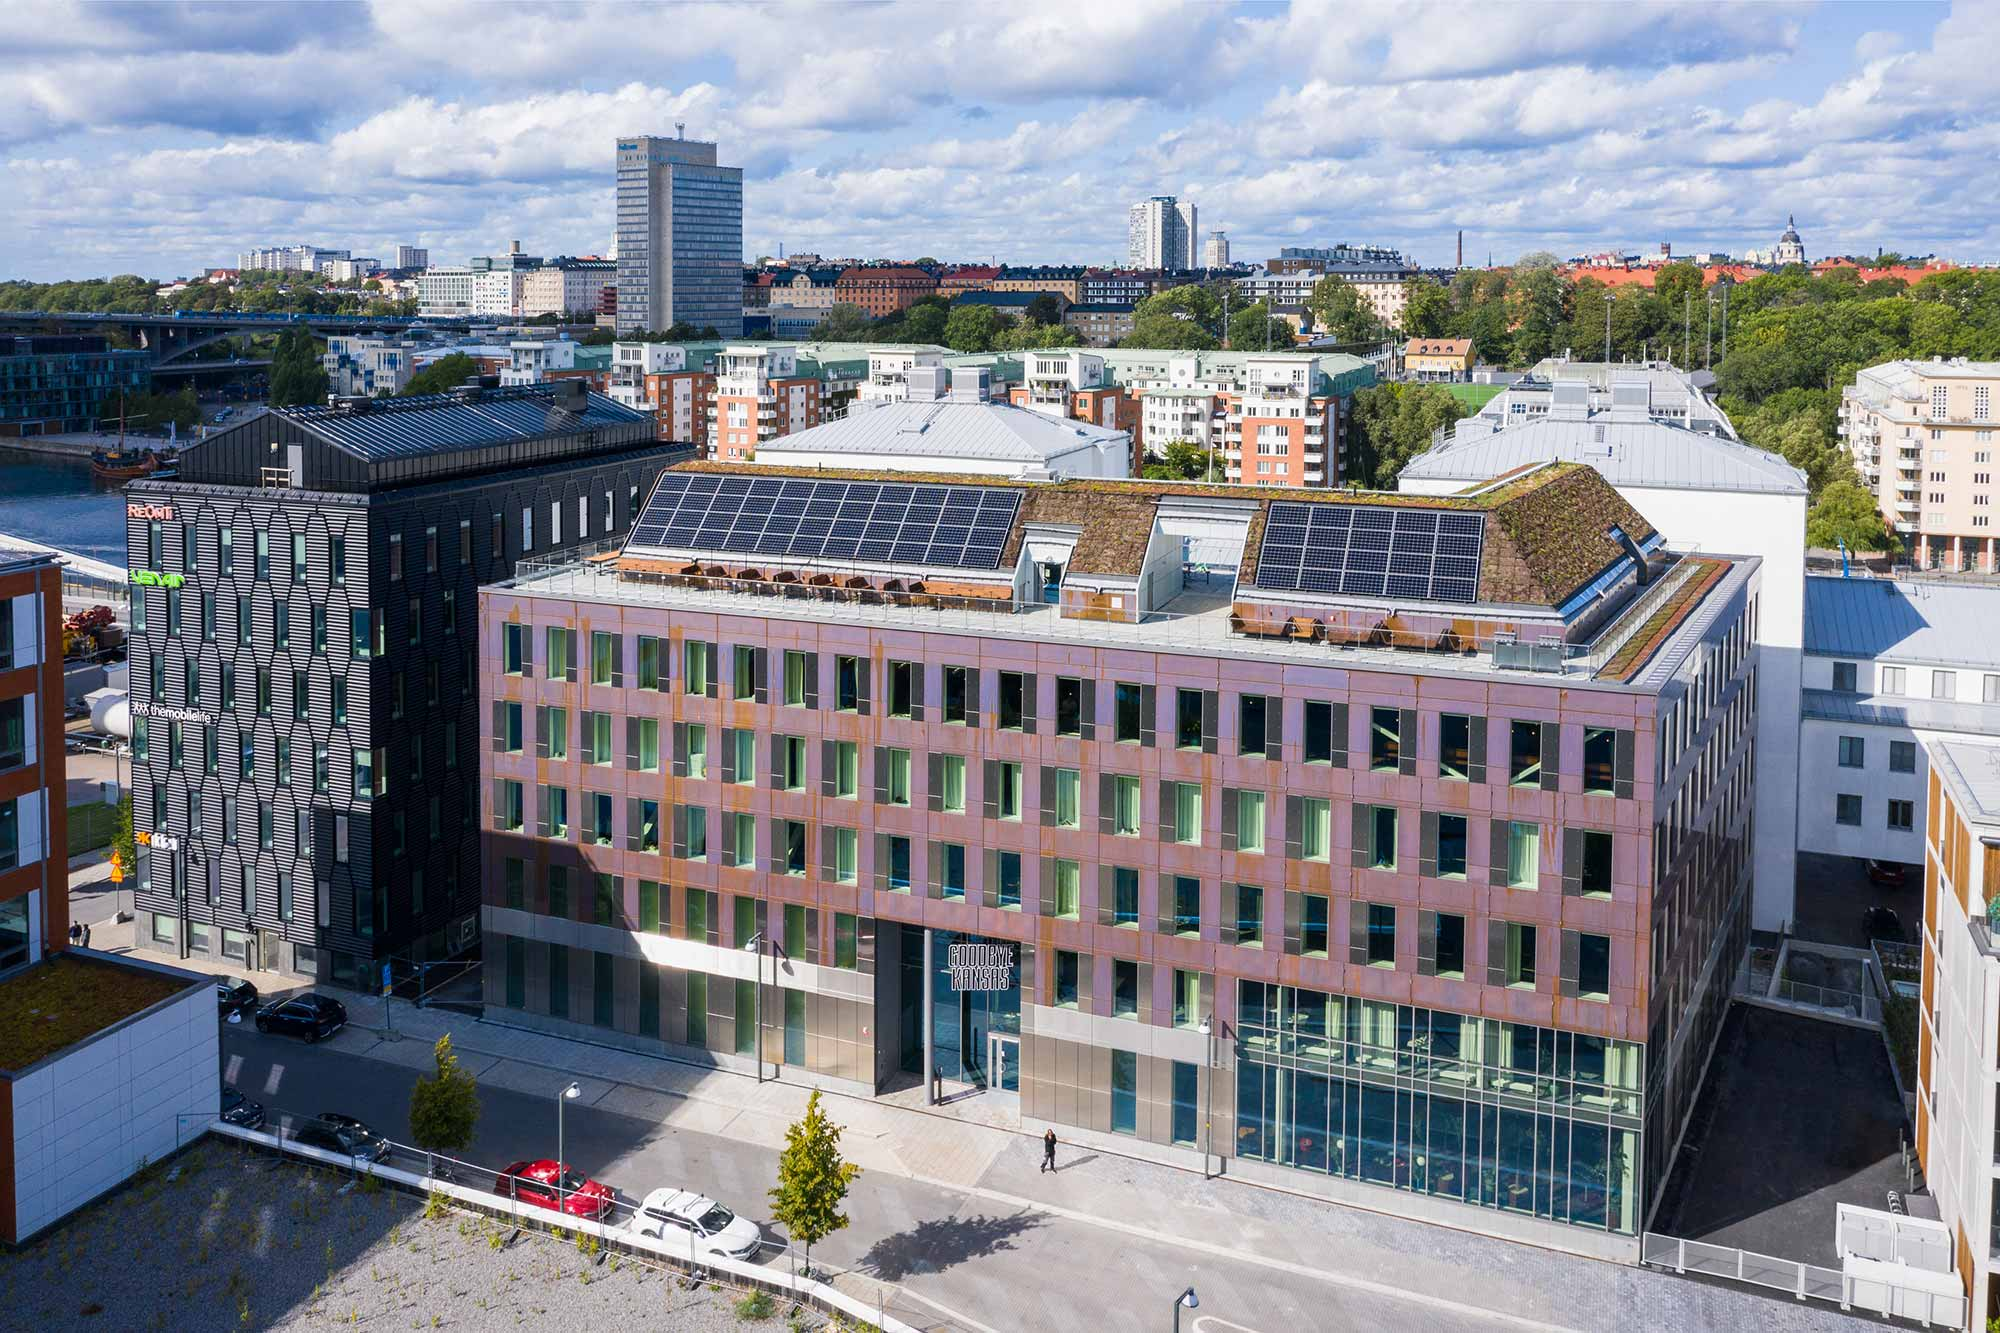 exterior image of copper house building in stockholm, home to Goodbye Kansas Studios